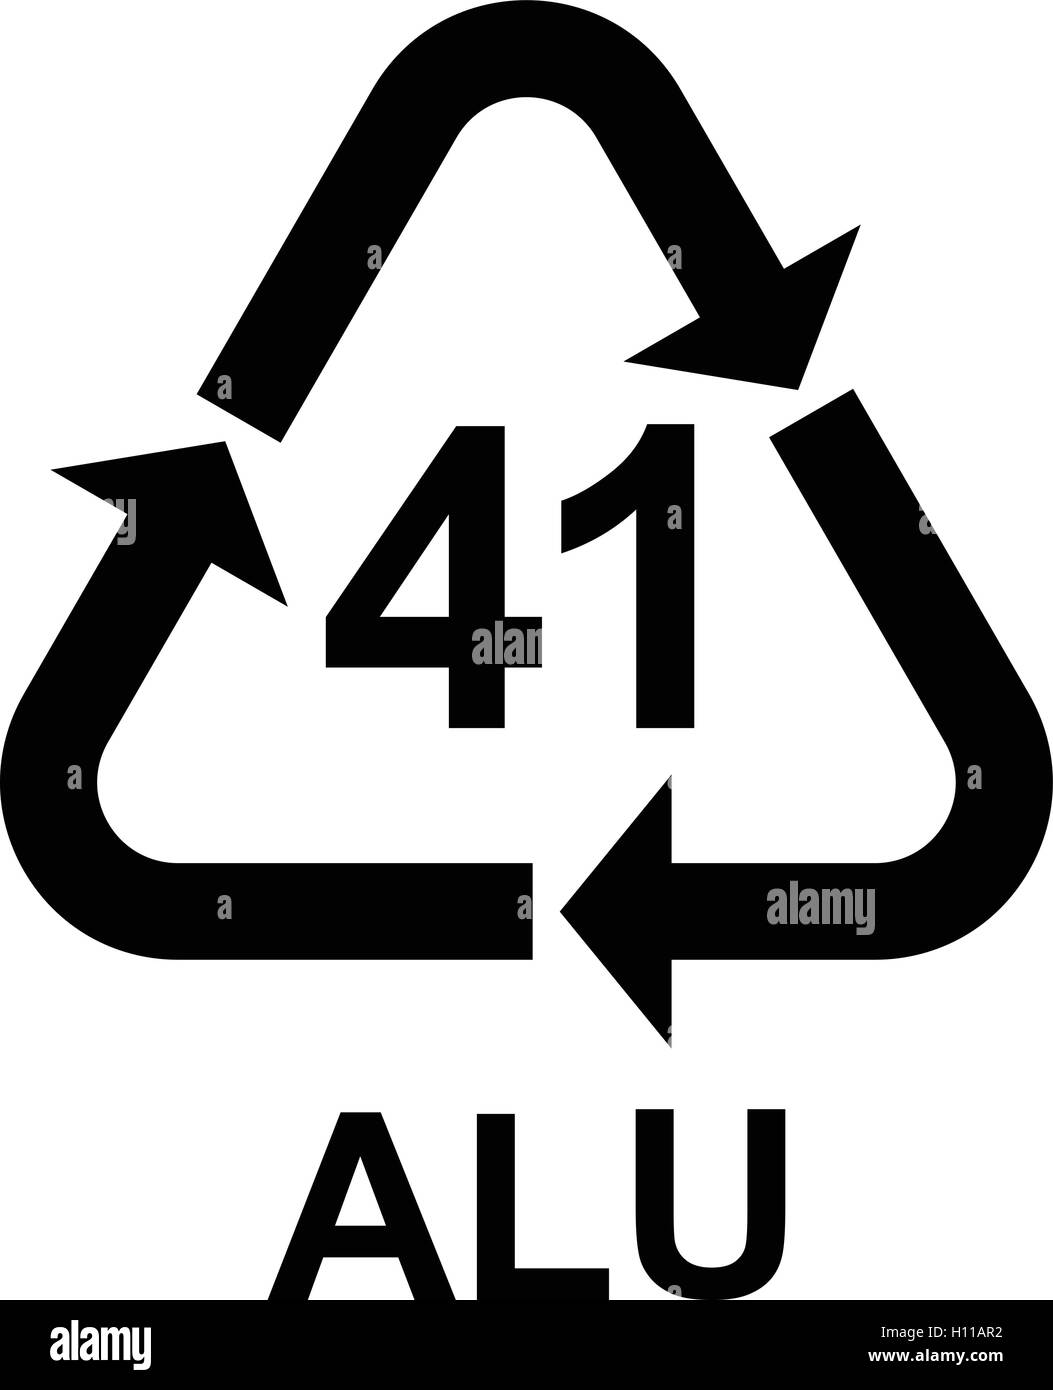 aluminium recycling symbol alu 41  metals recycling code recycle symbol vector download recycle symbol vector free download